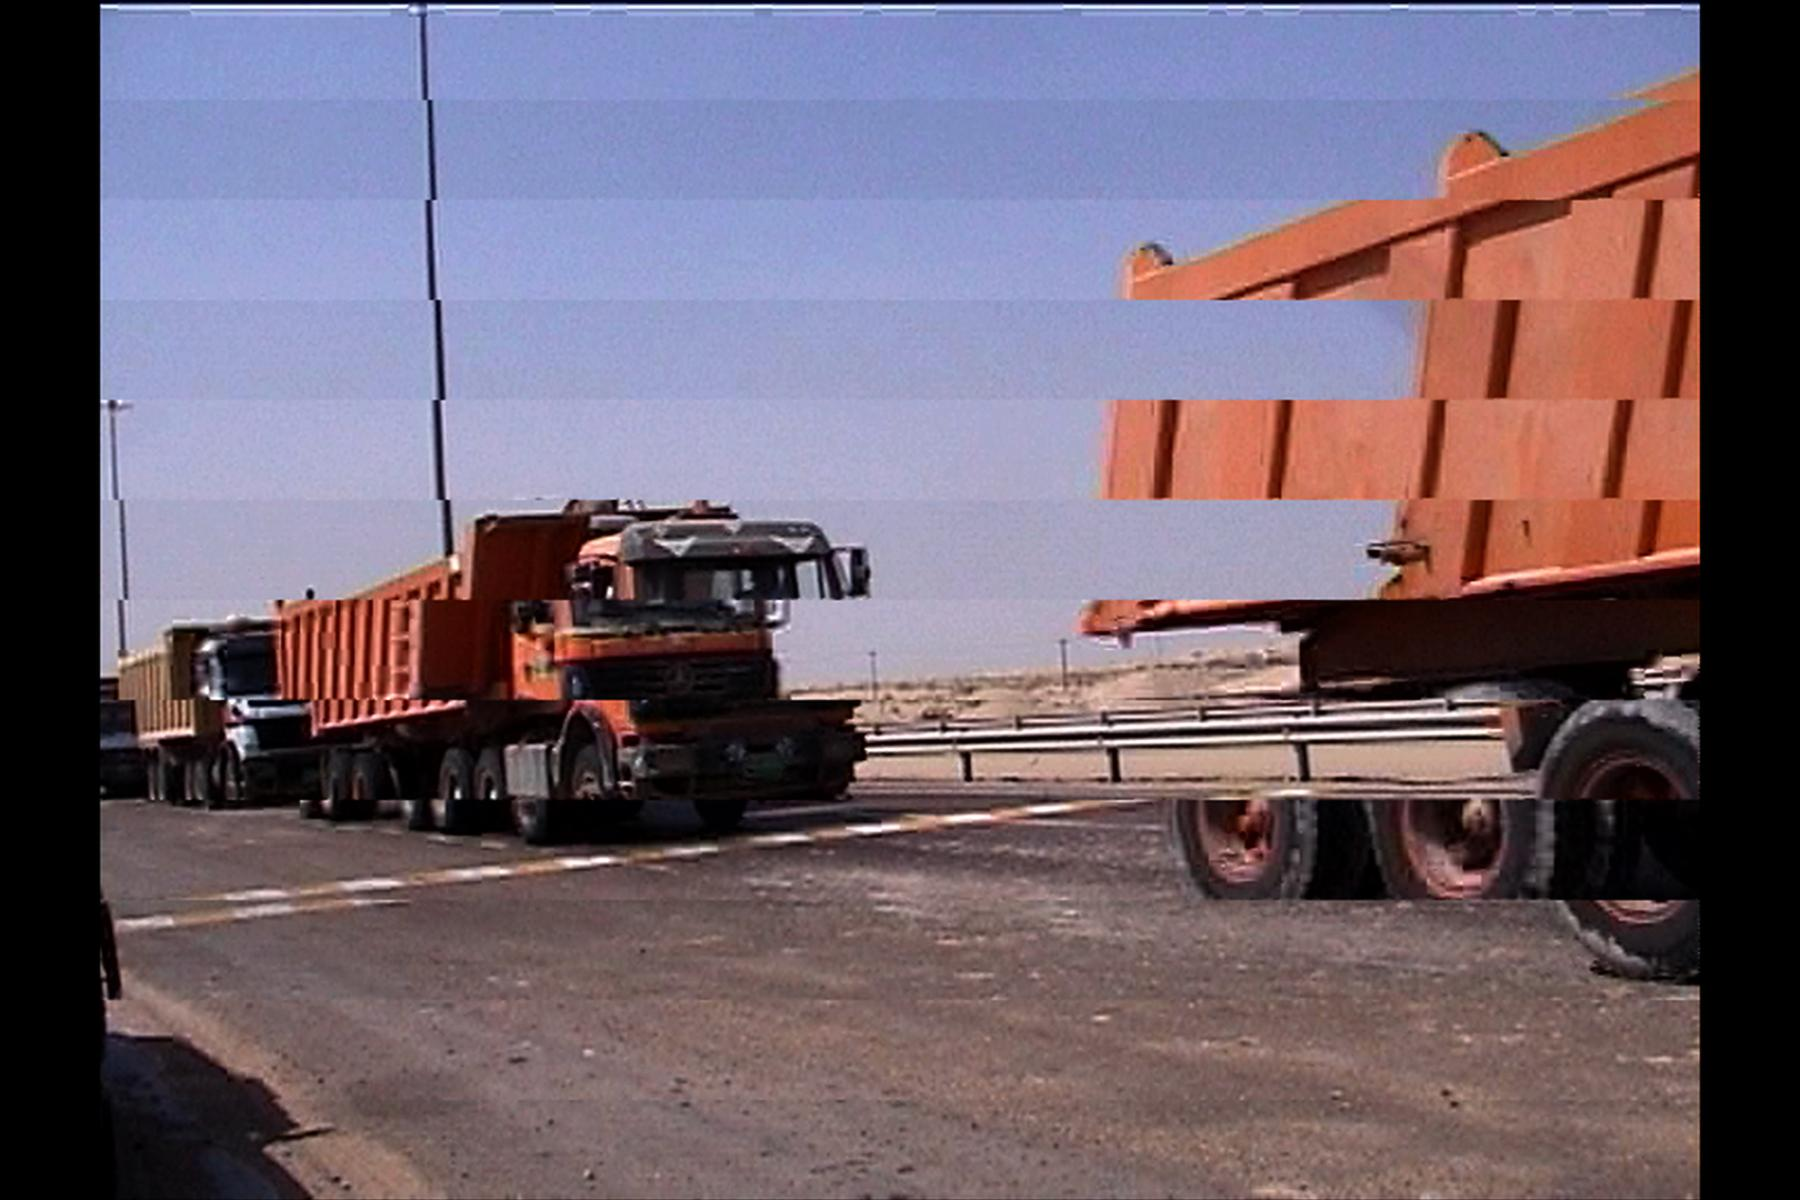 Large red trucks drive across the shot. The image has been manipulated so that strips of the image are offset from one another.